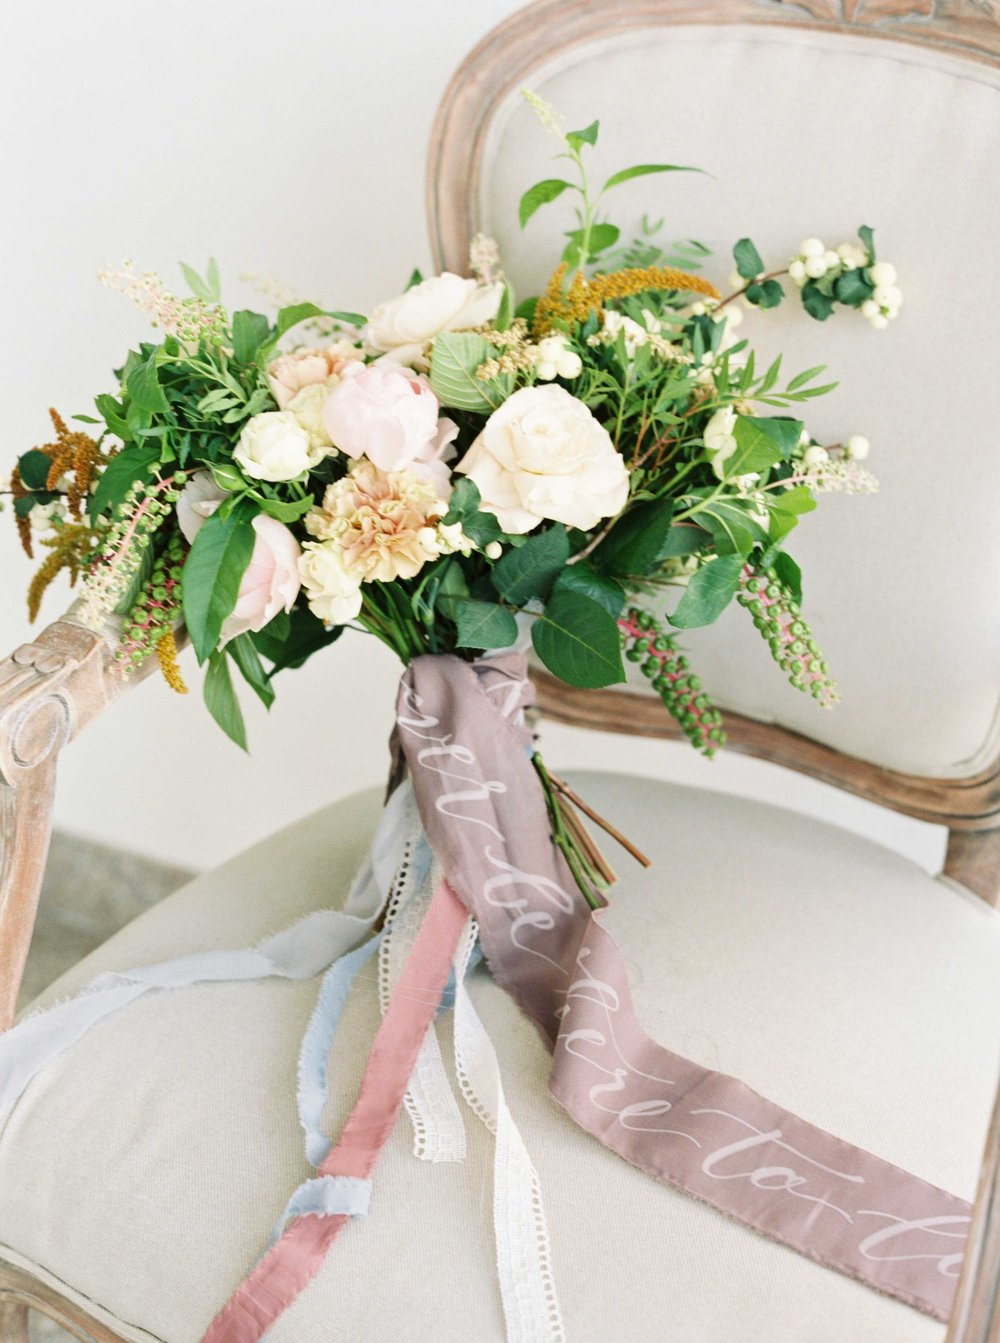 SPRINGTIME WEDDING INSPIRATION